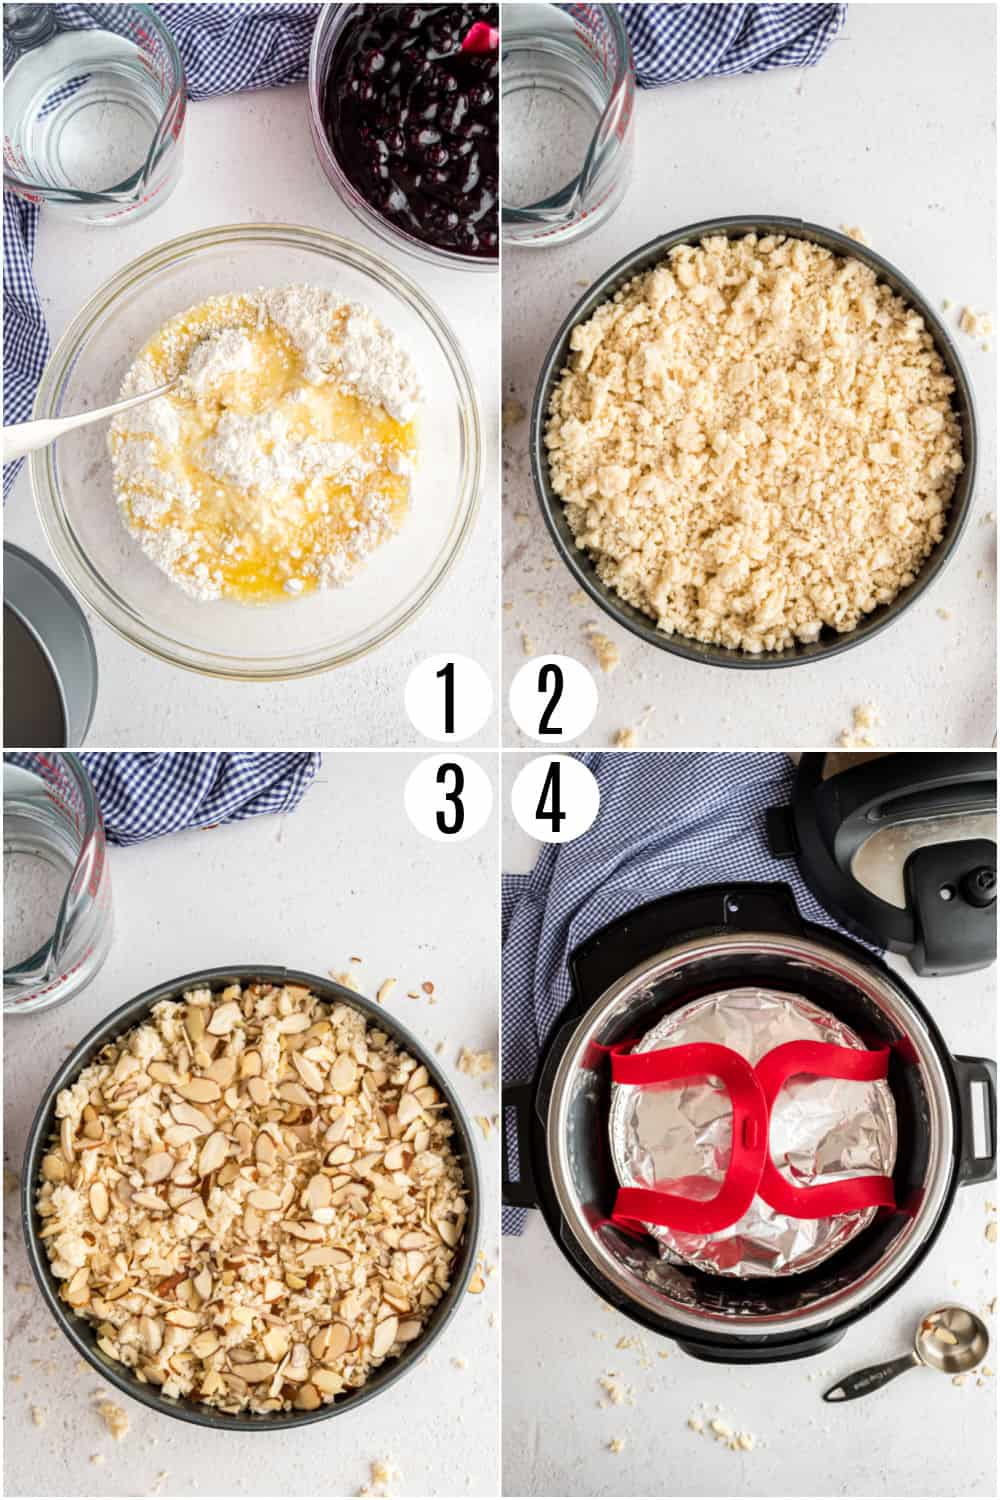 Step by step photos showing how to make blueberry cobbler in the Instant Pot.